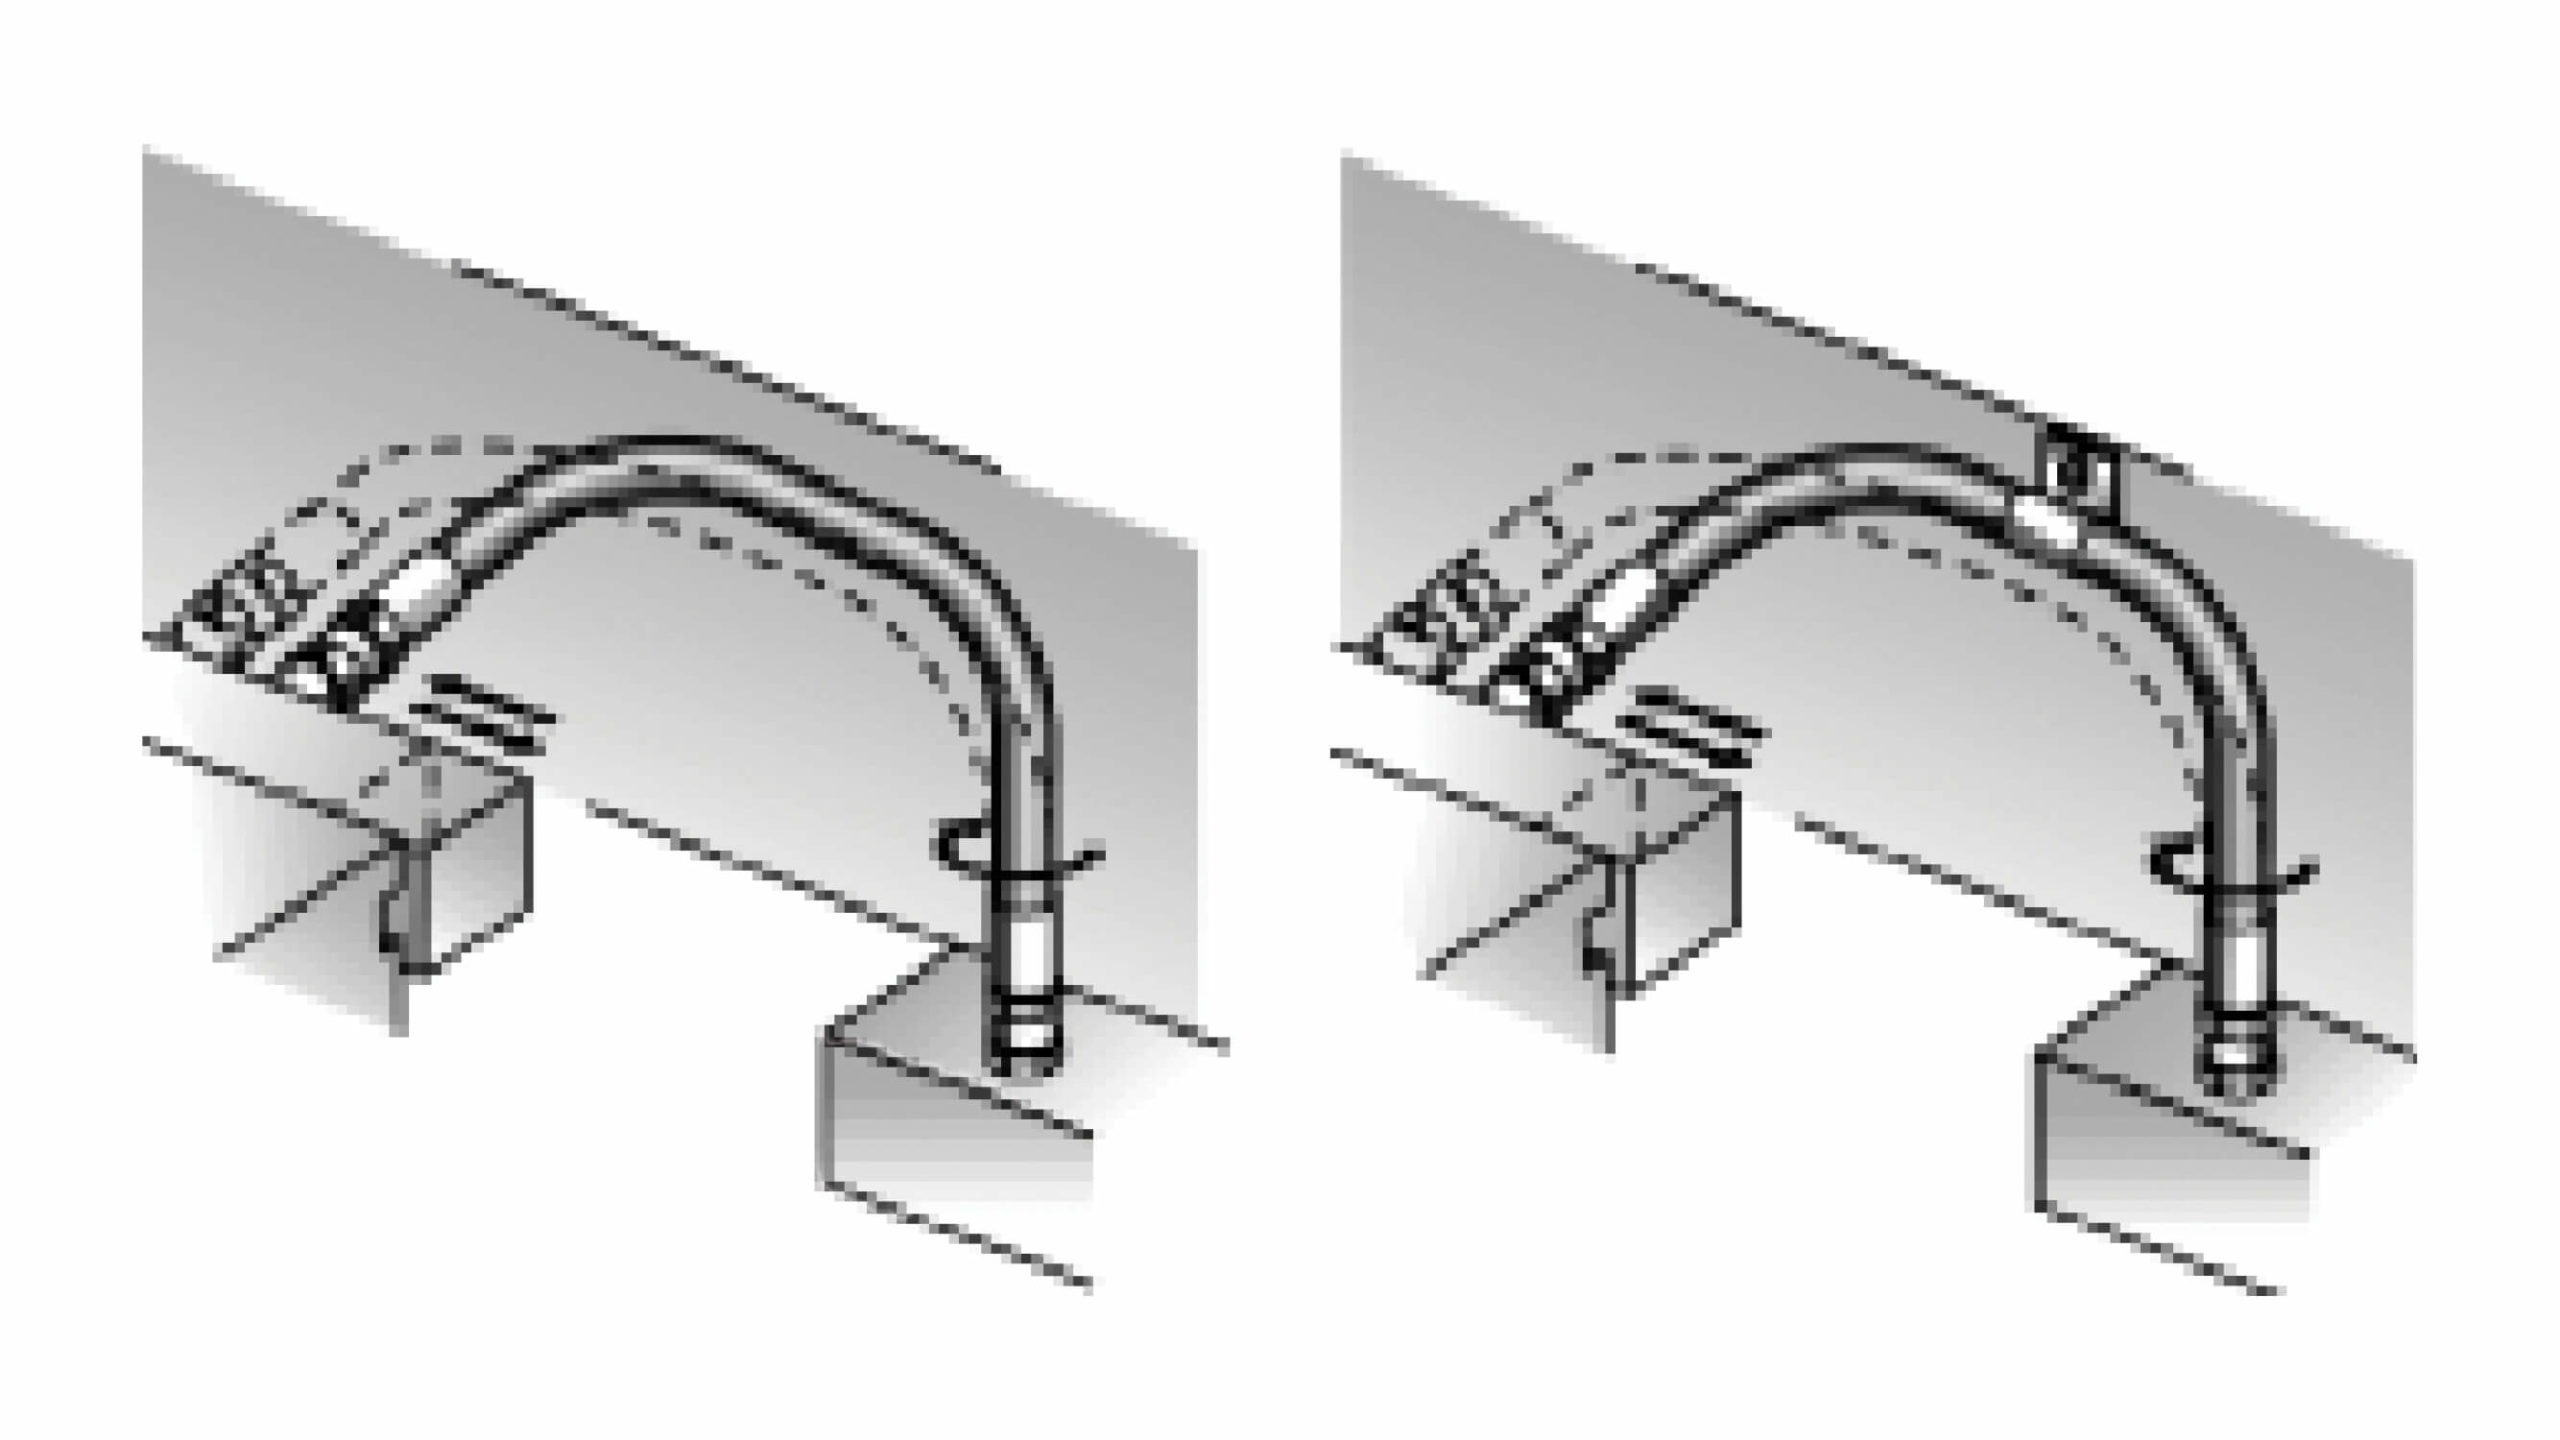 Two ways that a hose connects to equipment